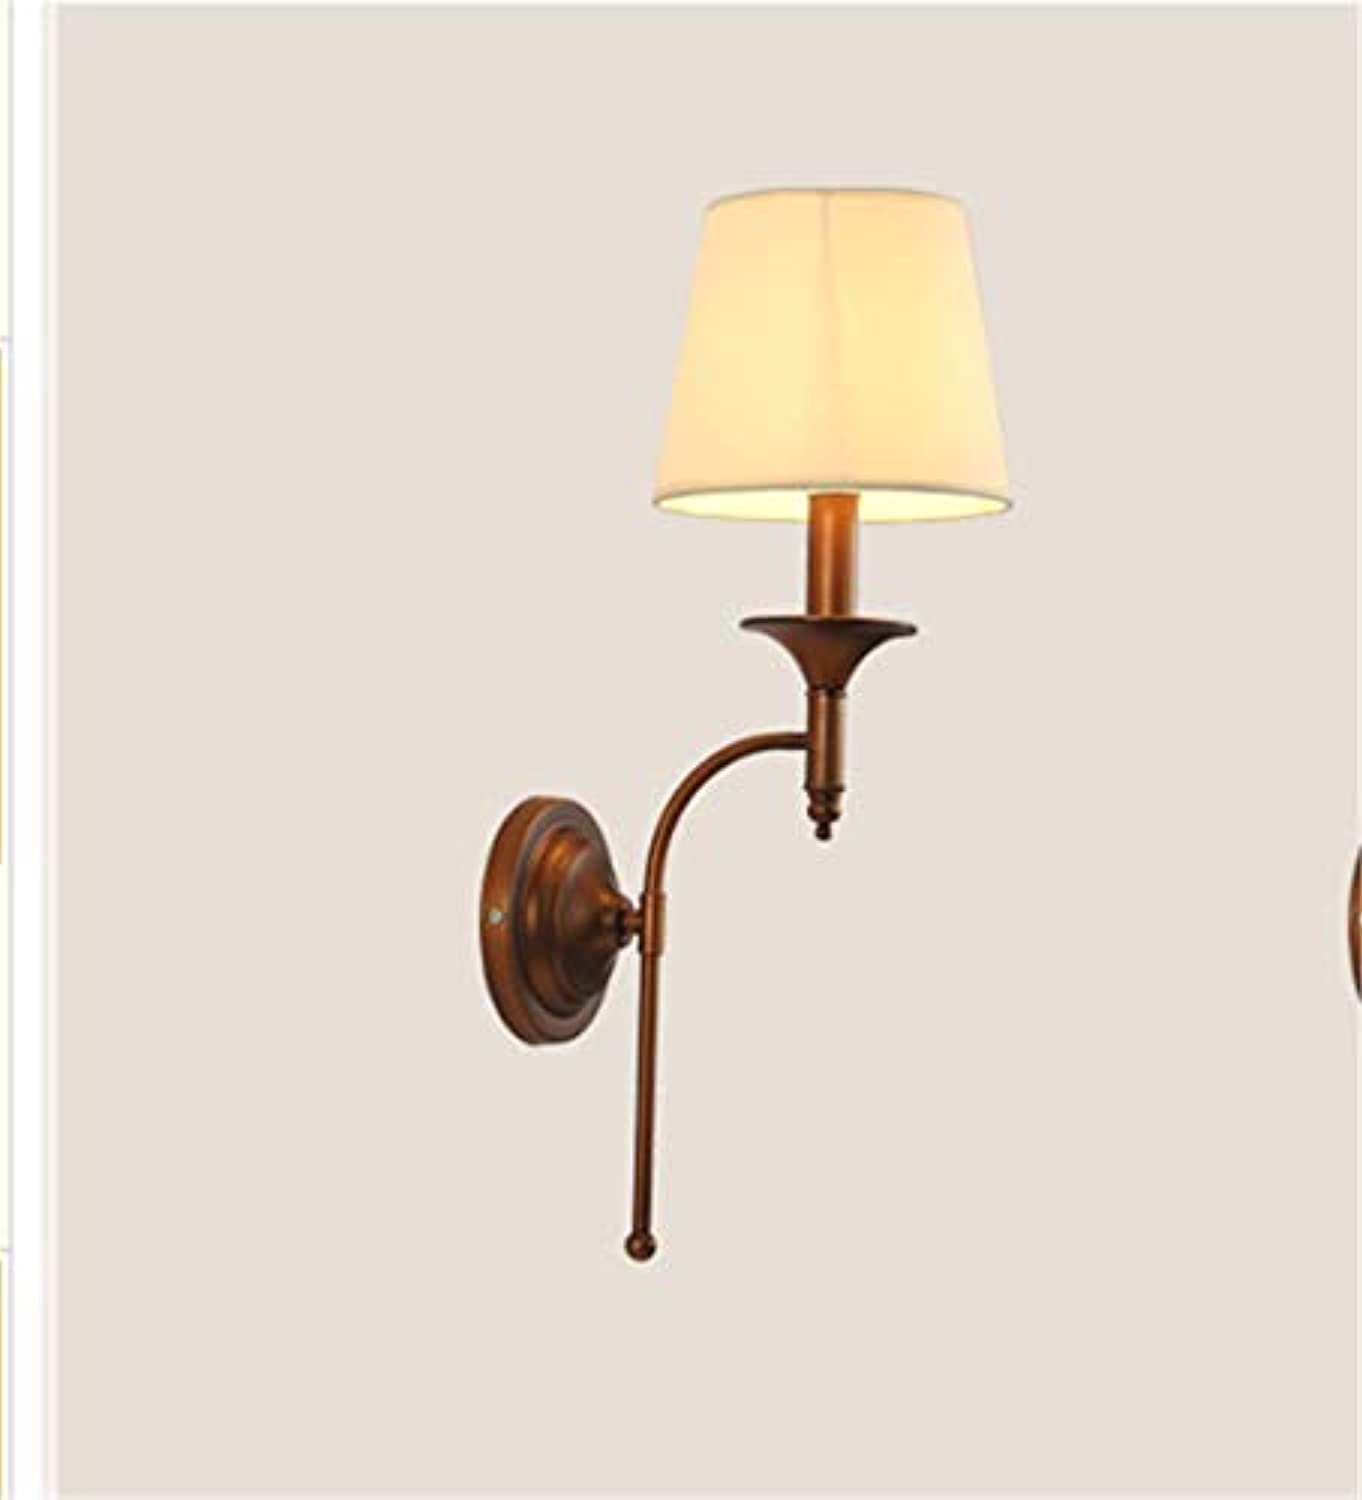 Dekorationinnenbeleuchtungbeleuchtungspotleuchtenleuchtensystemeamerican Wall Lamp Iron Art Living Room Corridor Concise Retro Bedroom Bedside Lamp Wall Lamp Größe  18  55